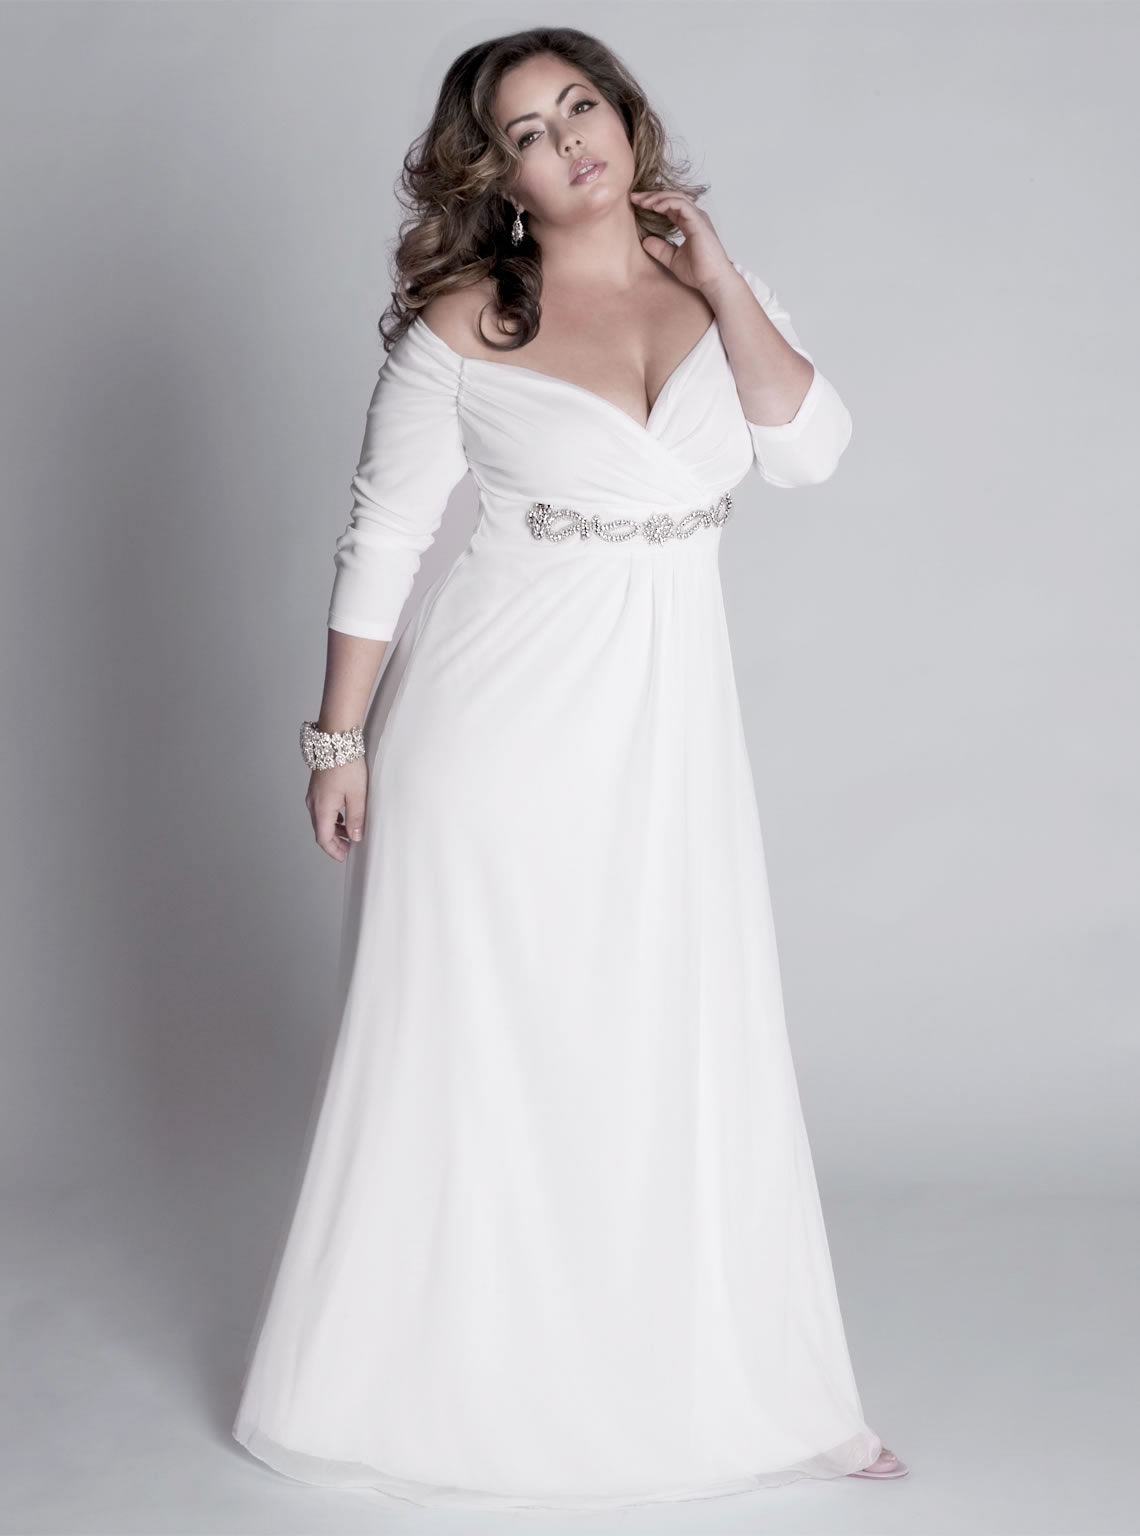 Top designers for plus size wedding dresses bravobride for Plus size wedding dress designers